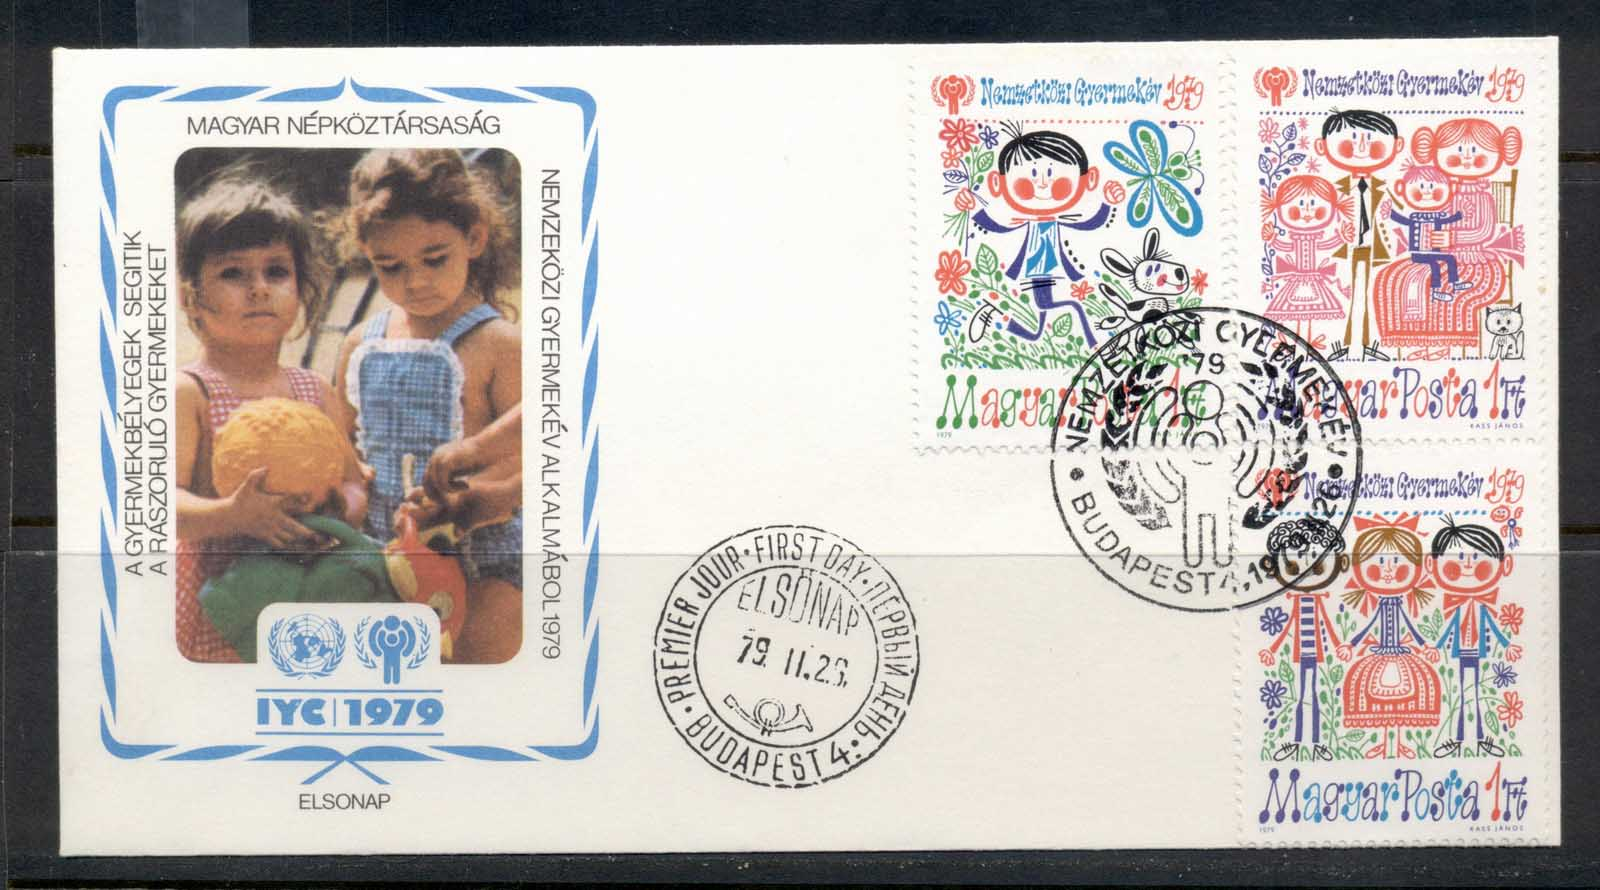 Hungary 1979 IYC International year of the Child FDC